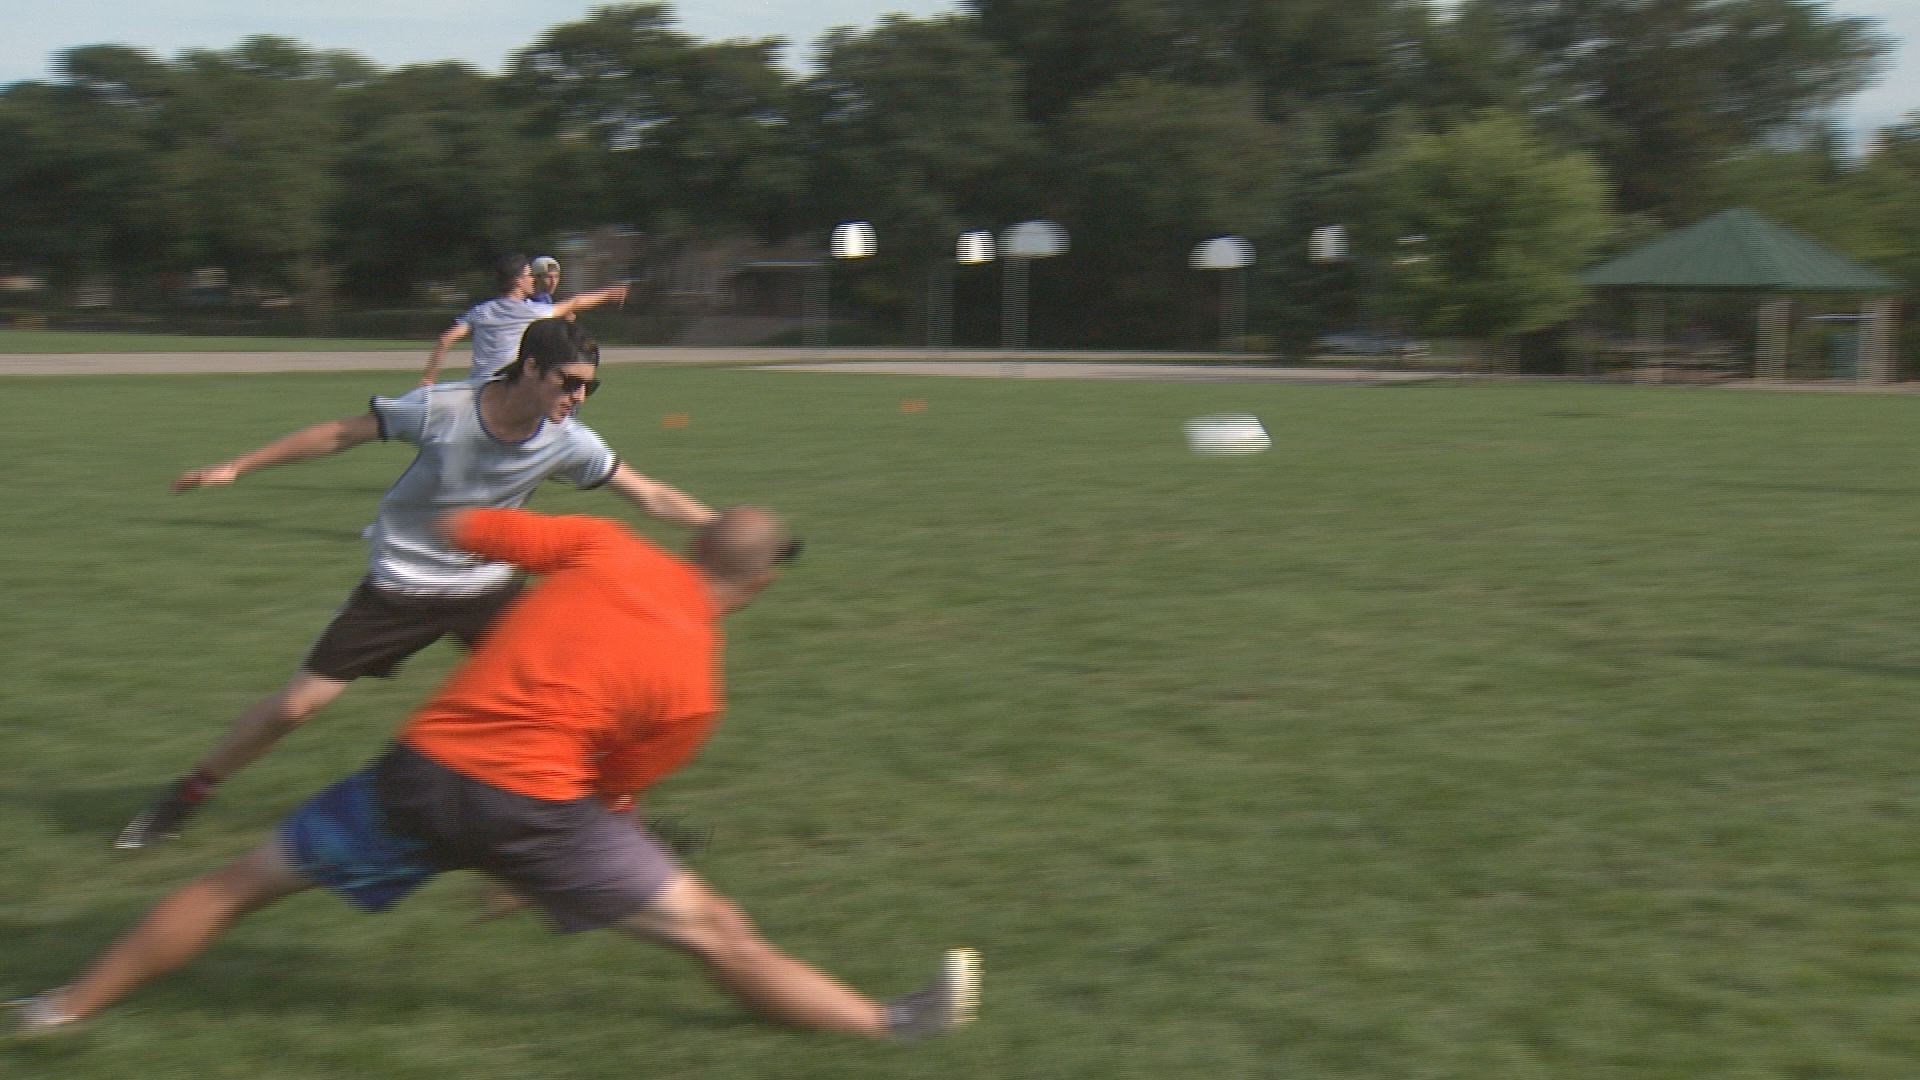 Growing the sport of ultimate frisbee